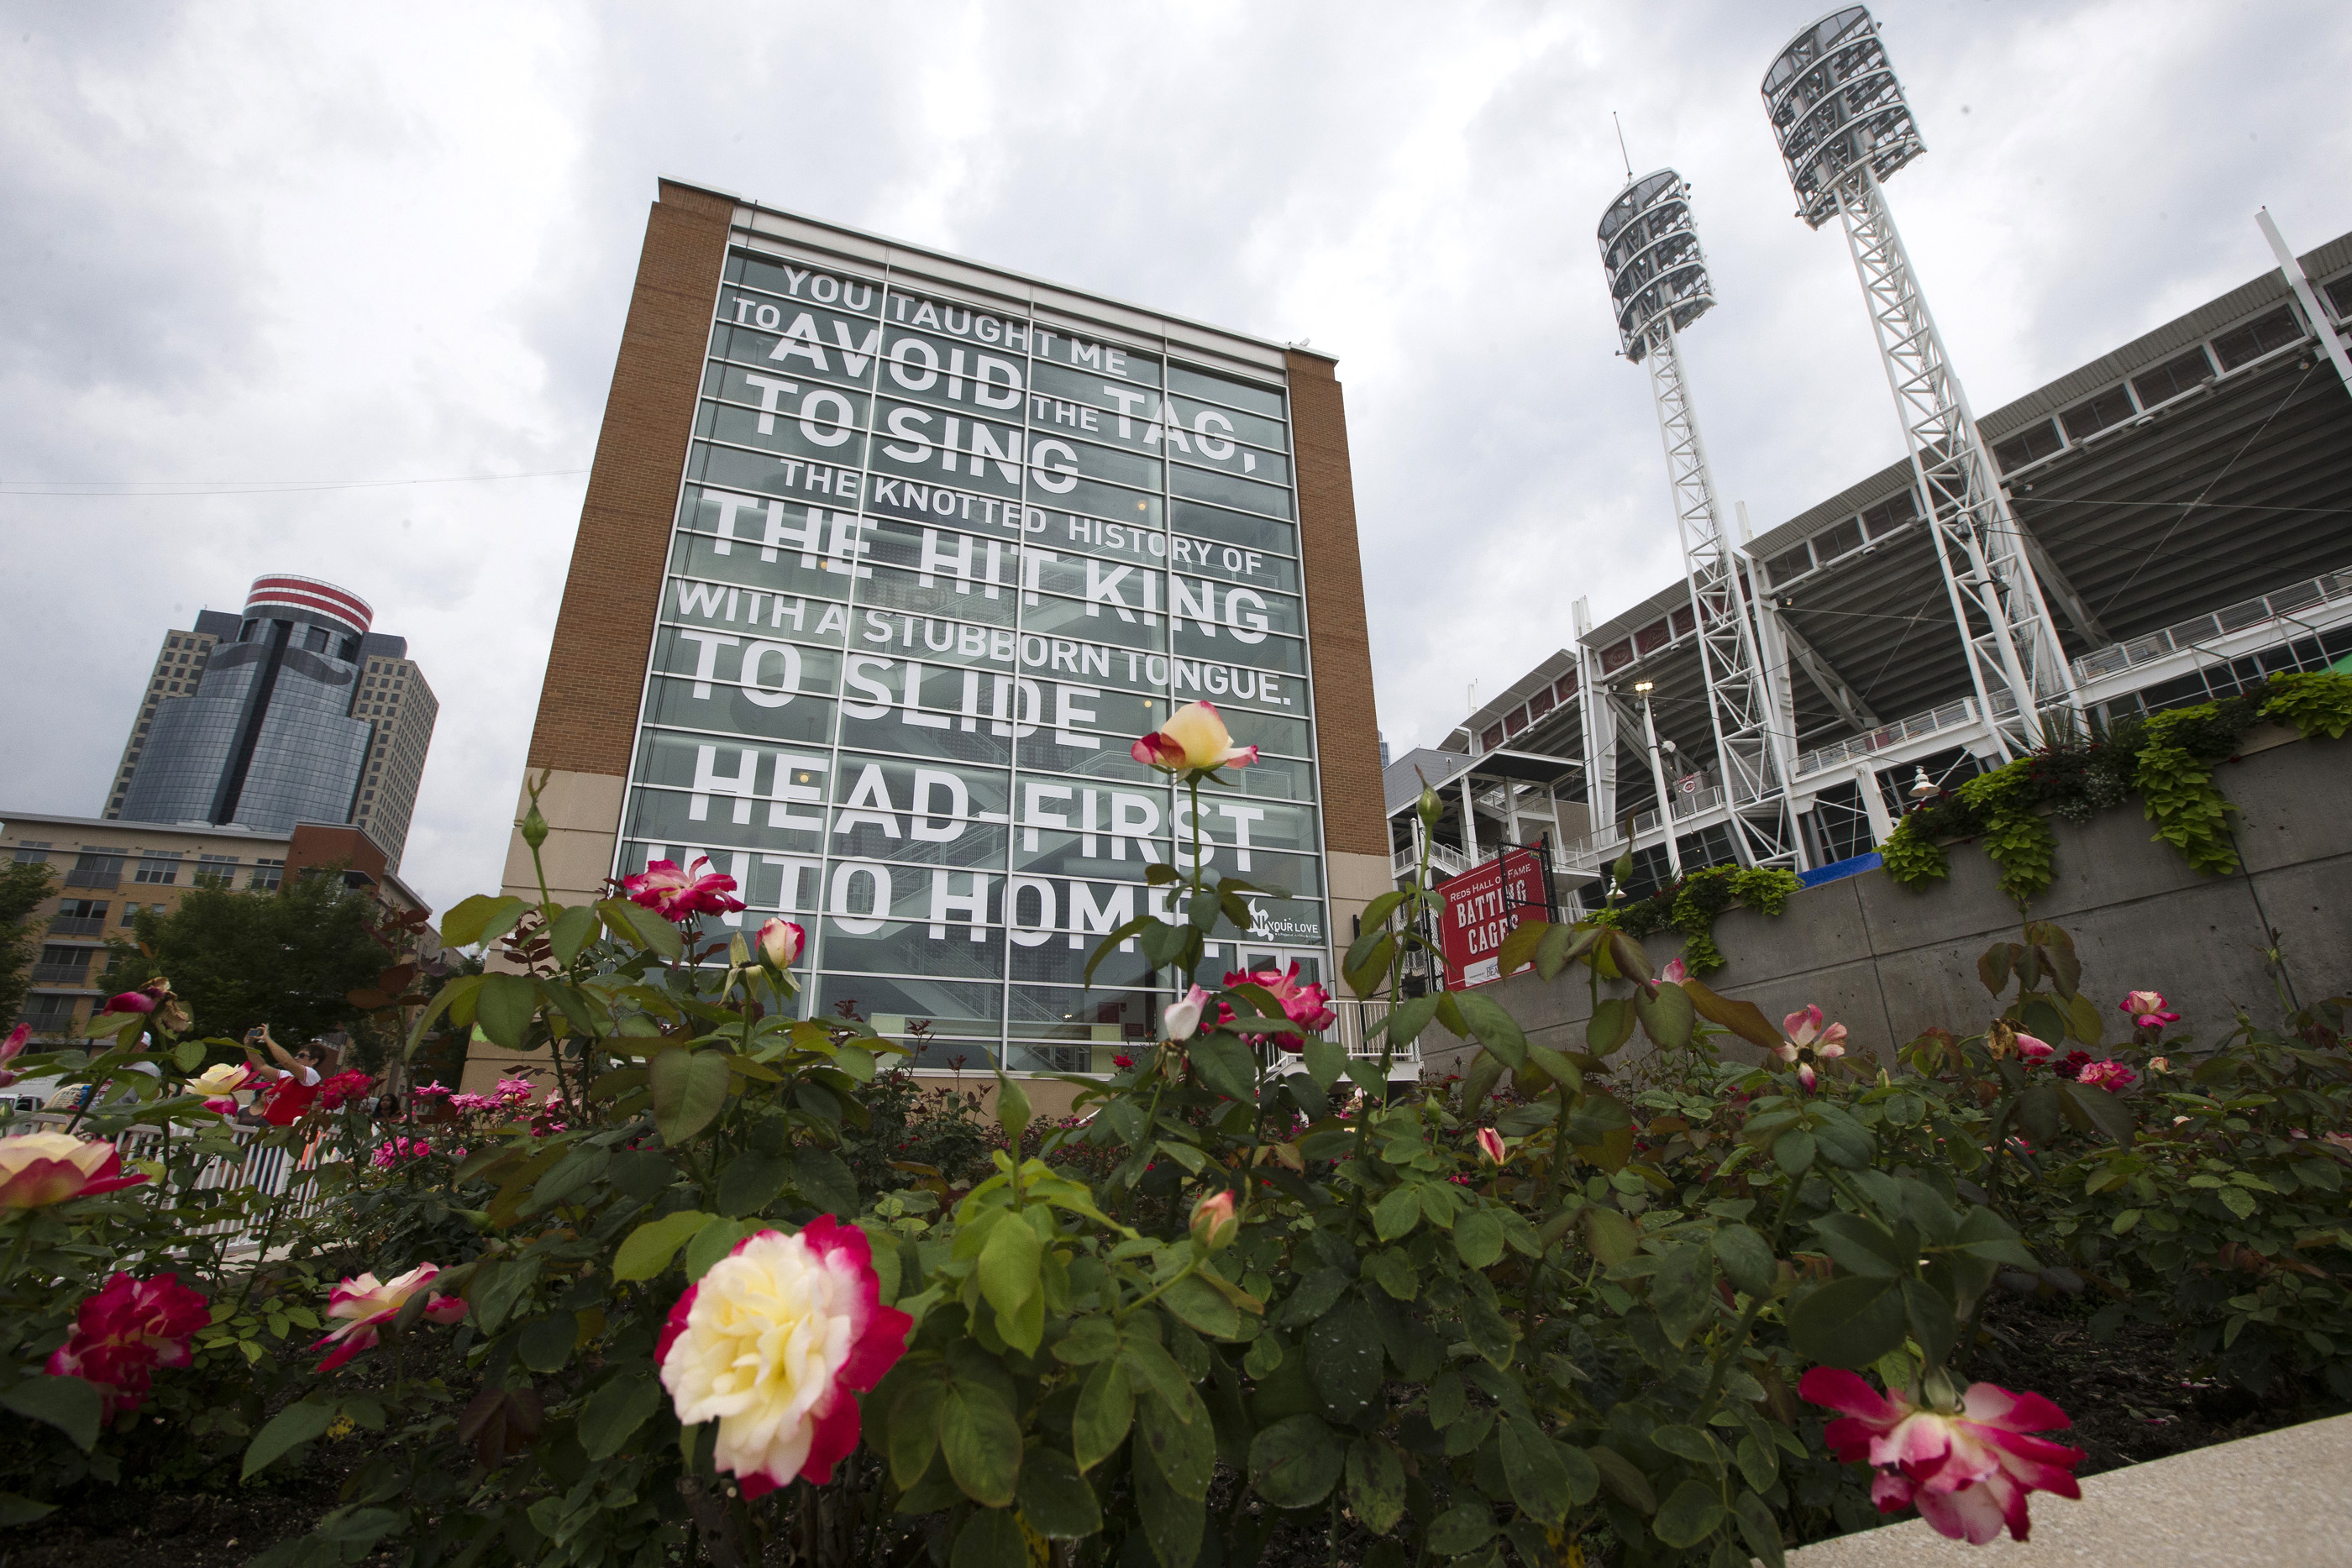 A rose garden planted in tribute to former Cincinnati Reds baseball player Pete Rose is seen outside outside Great American Ball Park, Monday, July 13, 2015, in Cincinnati. The Reds, hosting the All-Star Game for the first time since 1988, celebrate their